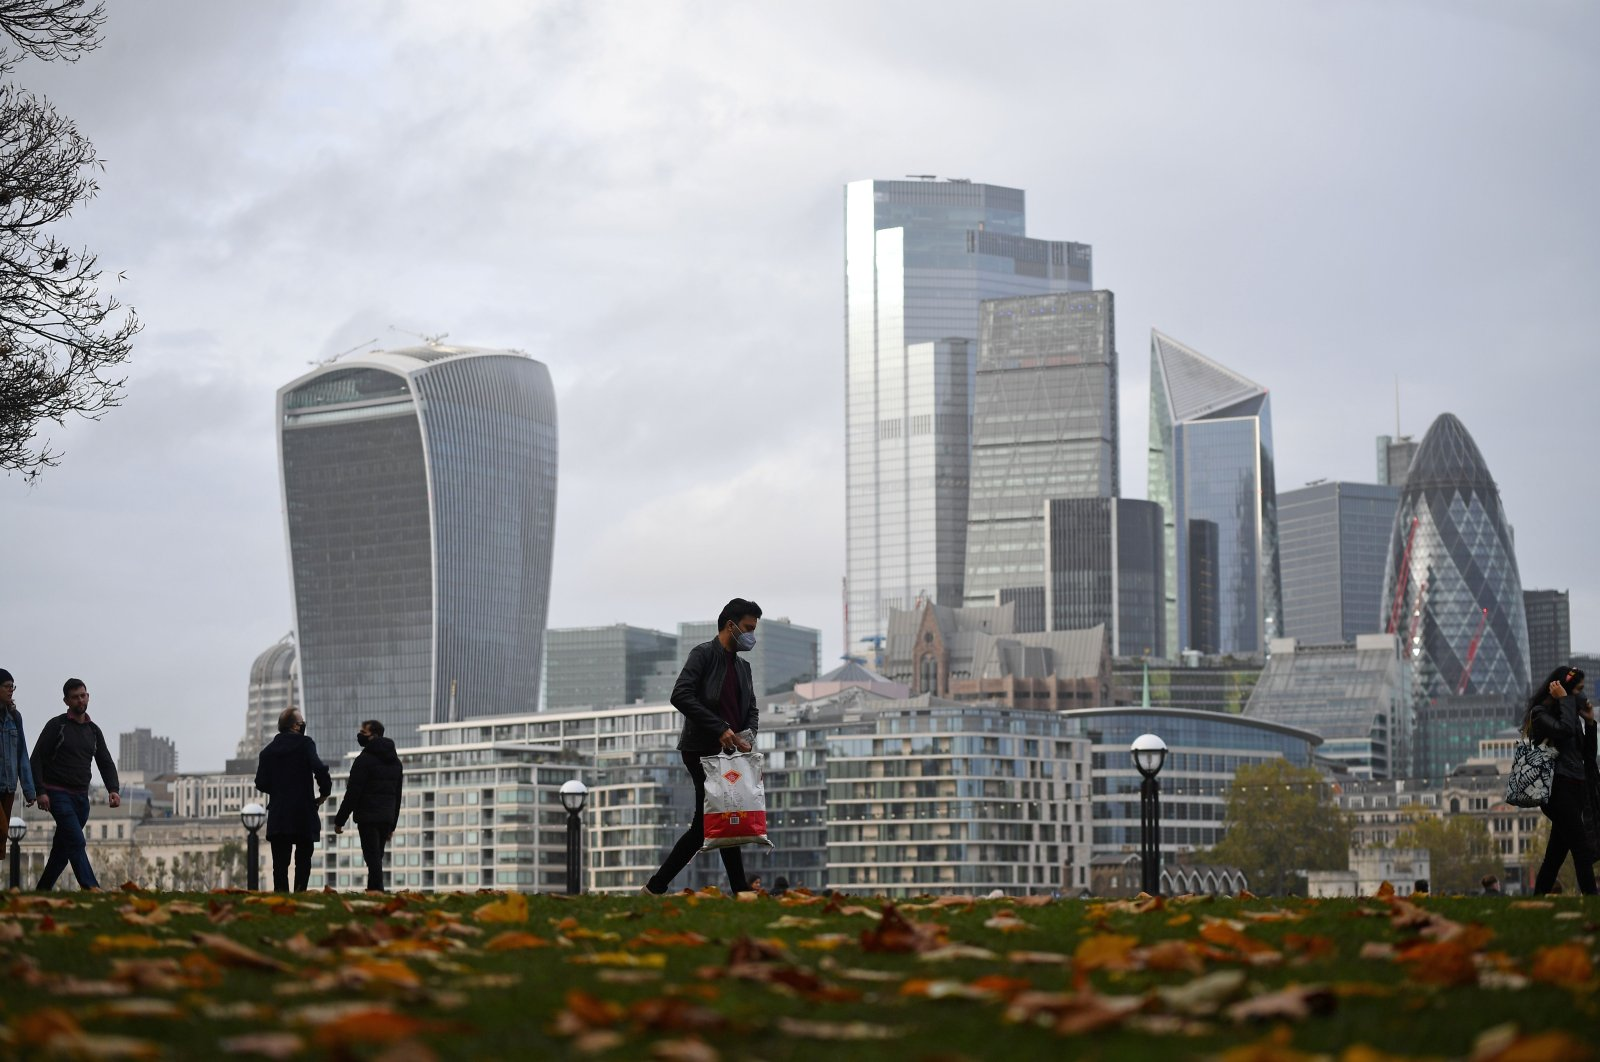 People walk along the southern bank of the River Thames with the office towers of the City of London in the background in London, U.K., Nov. 1, 2020. (AFP Photo)